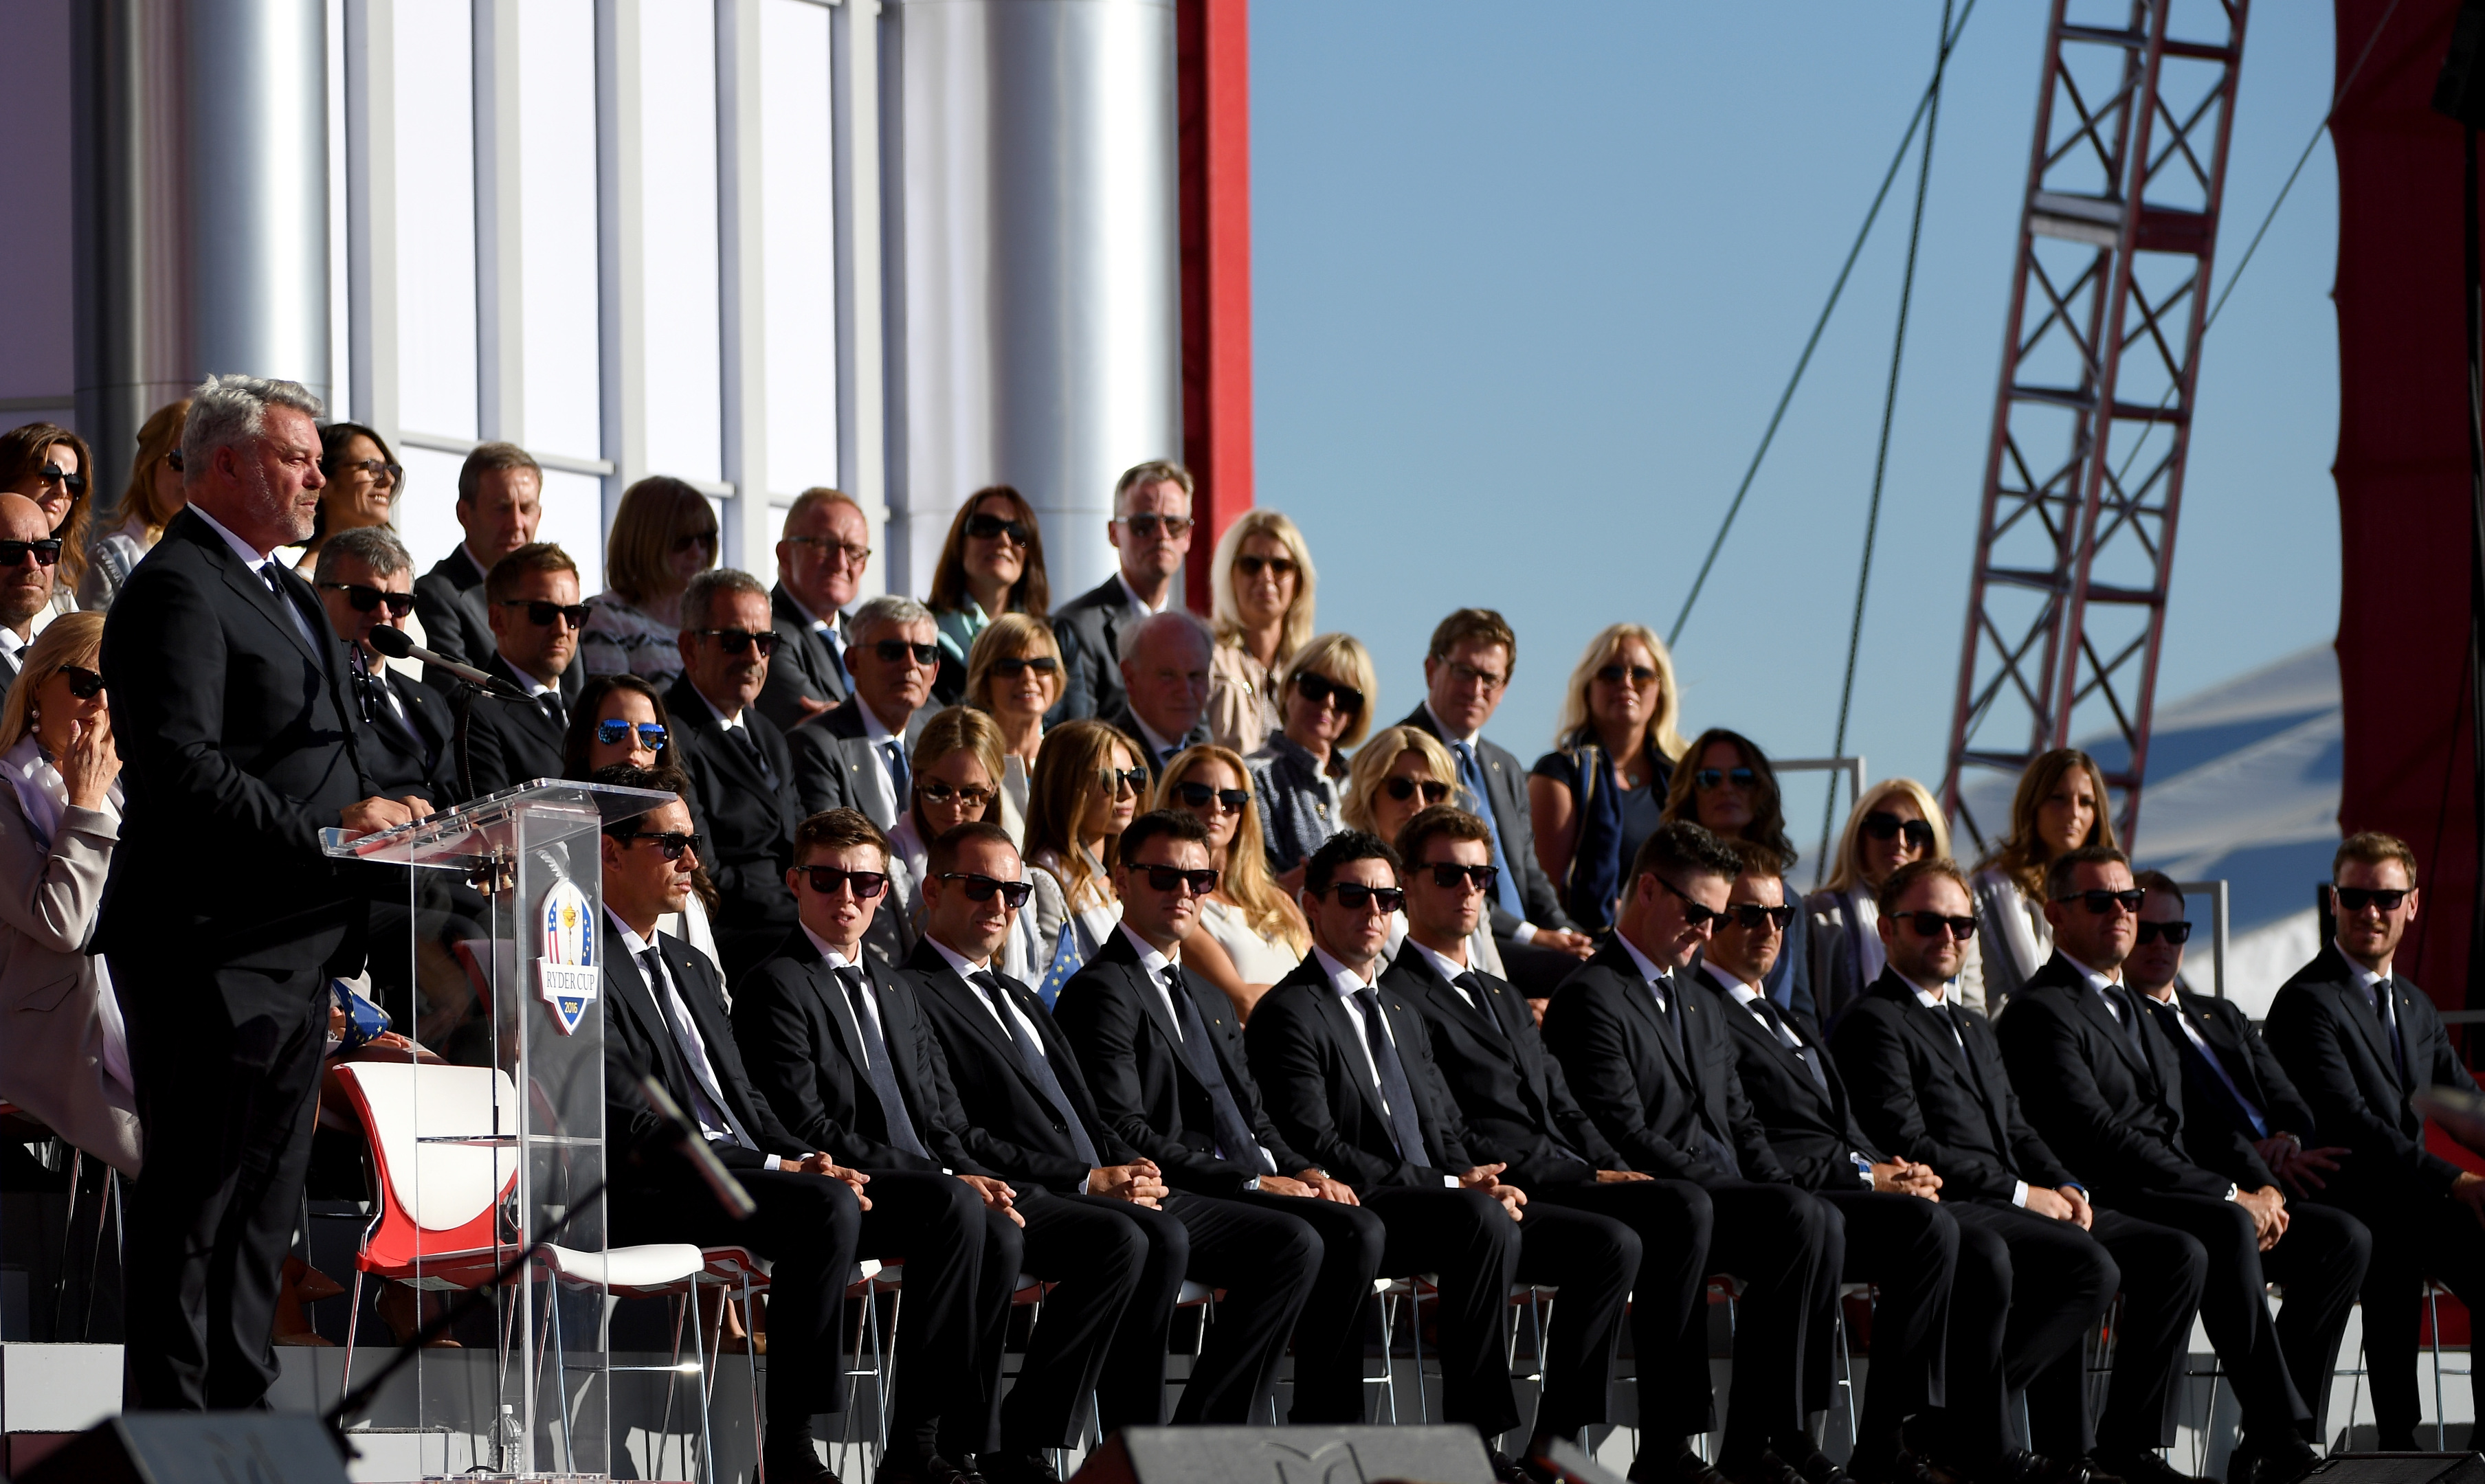 Team Europe line up at the Opening Ceremony for the 41st Ryder Cup.